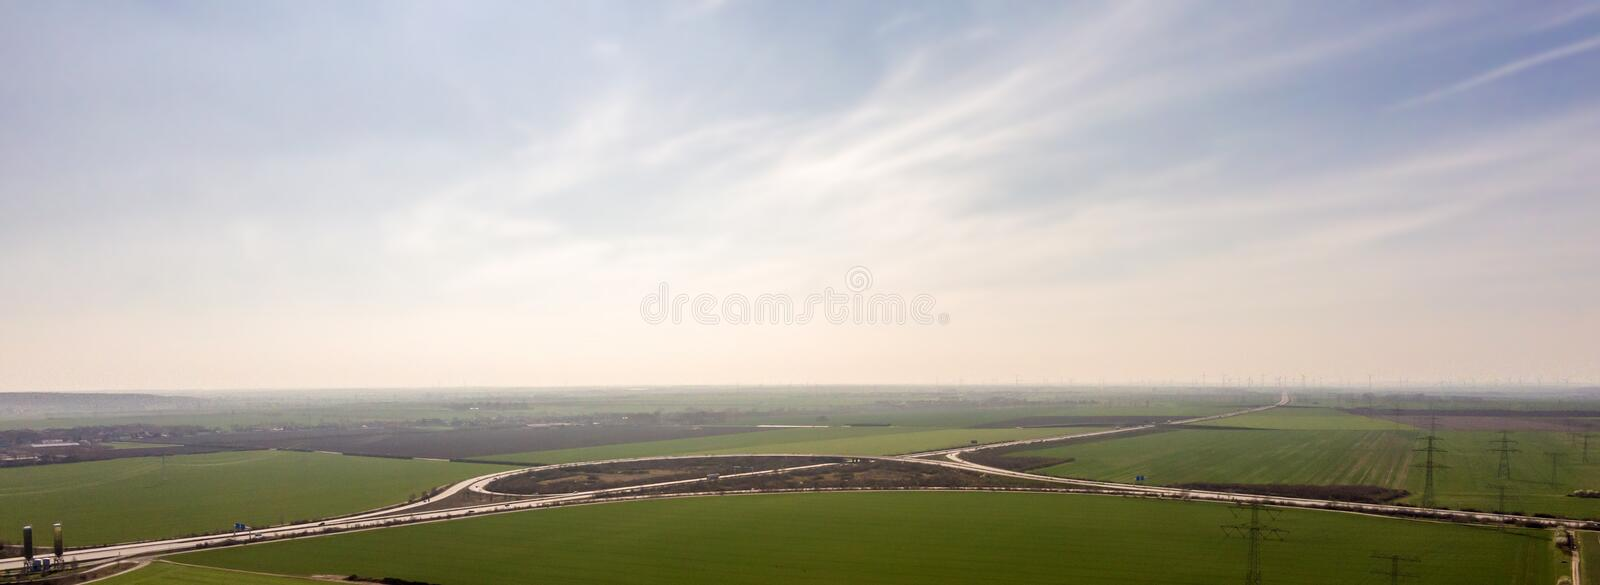 Panorama of a freeway triangle royalty free stock photo